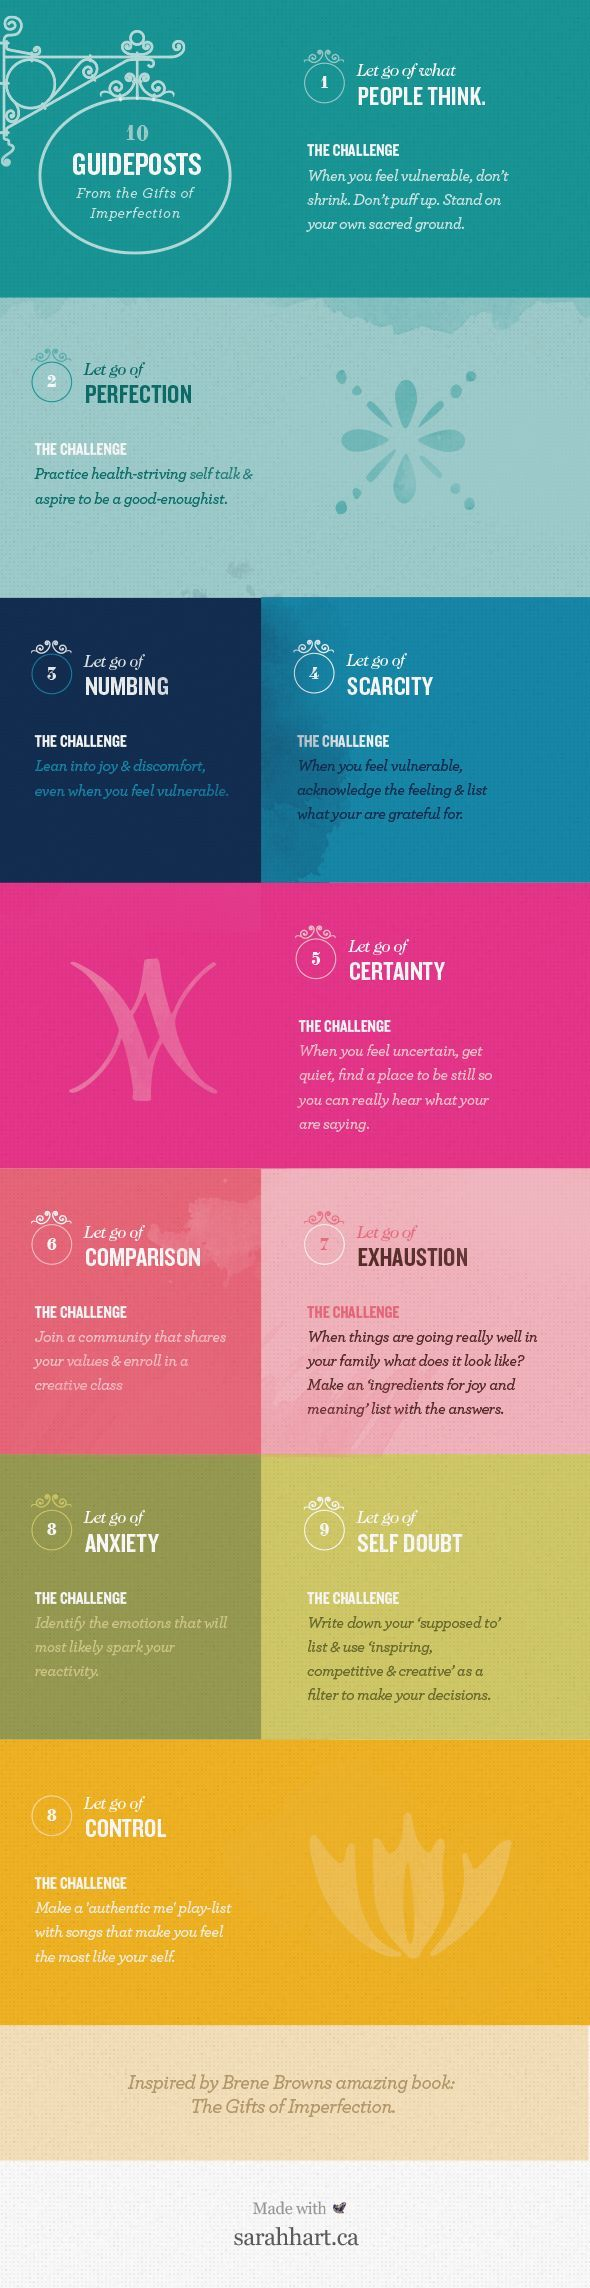 The 10 Guideposts Infographic from The Book 'The Gifts of Imperfection' by Brene Brown